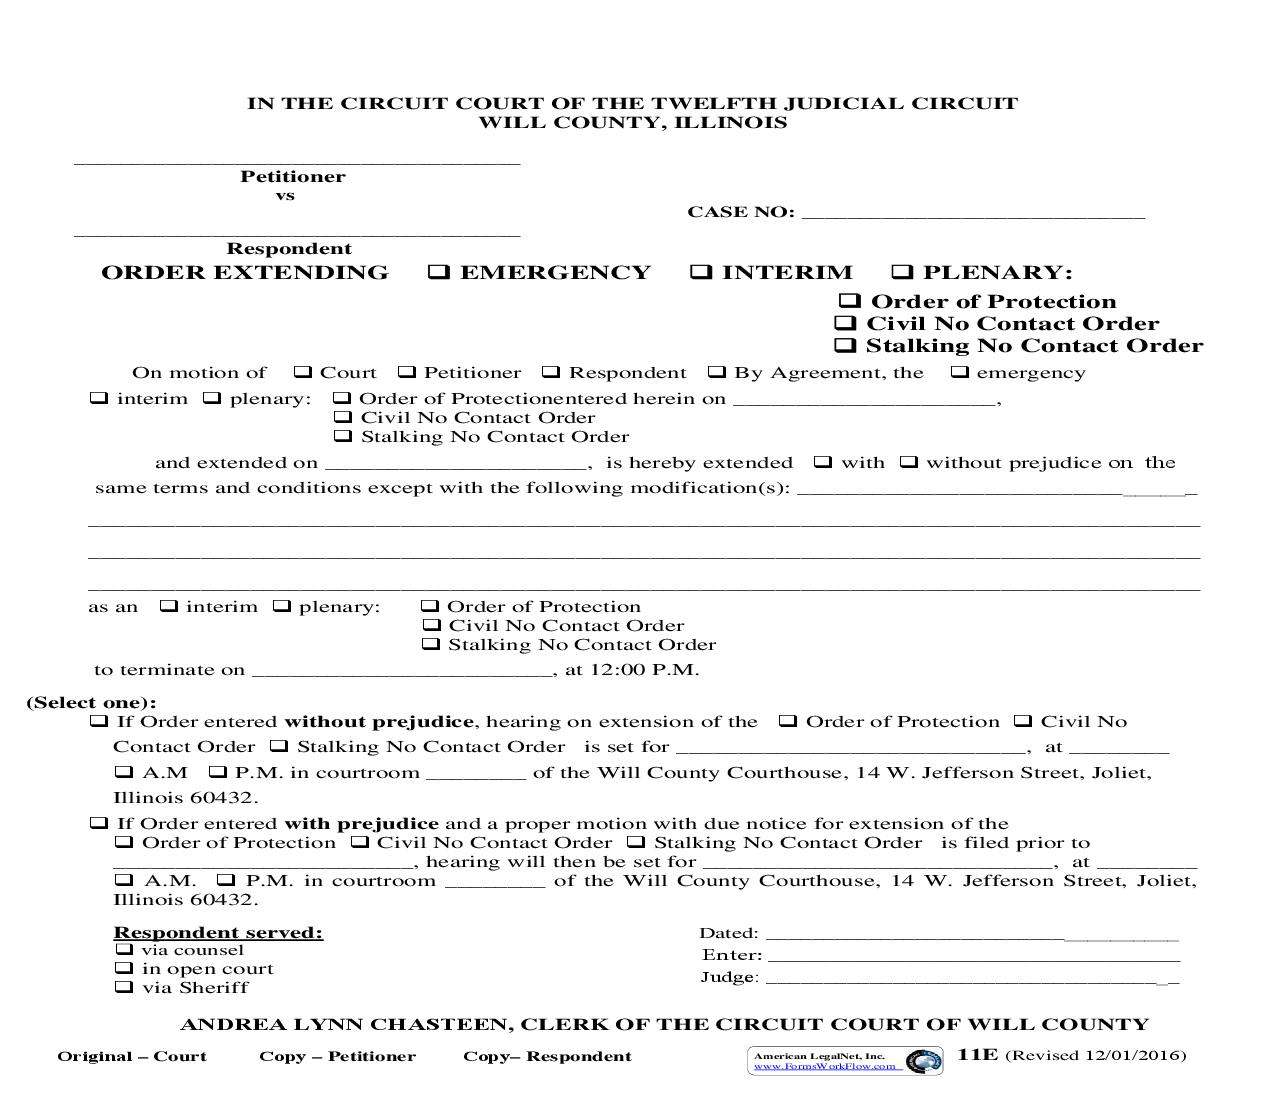 Order Extending Emergency Interim Or Plenary Order Of Protection Or Civil No Contact Order {11E}   Pdf Fpdf Doc Docx   Illinois